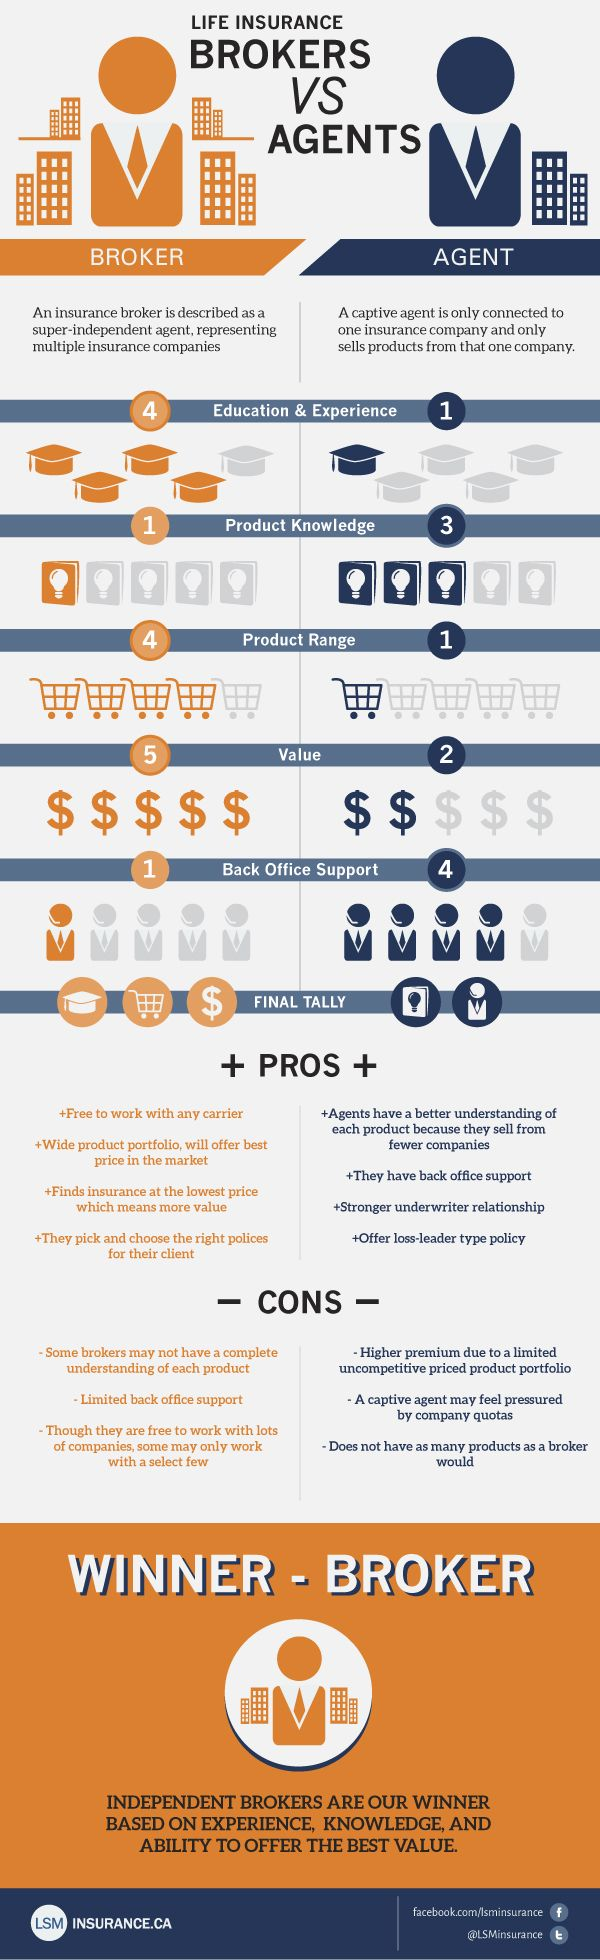 difference between insurance company and insurance broker infographic - Google keresés